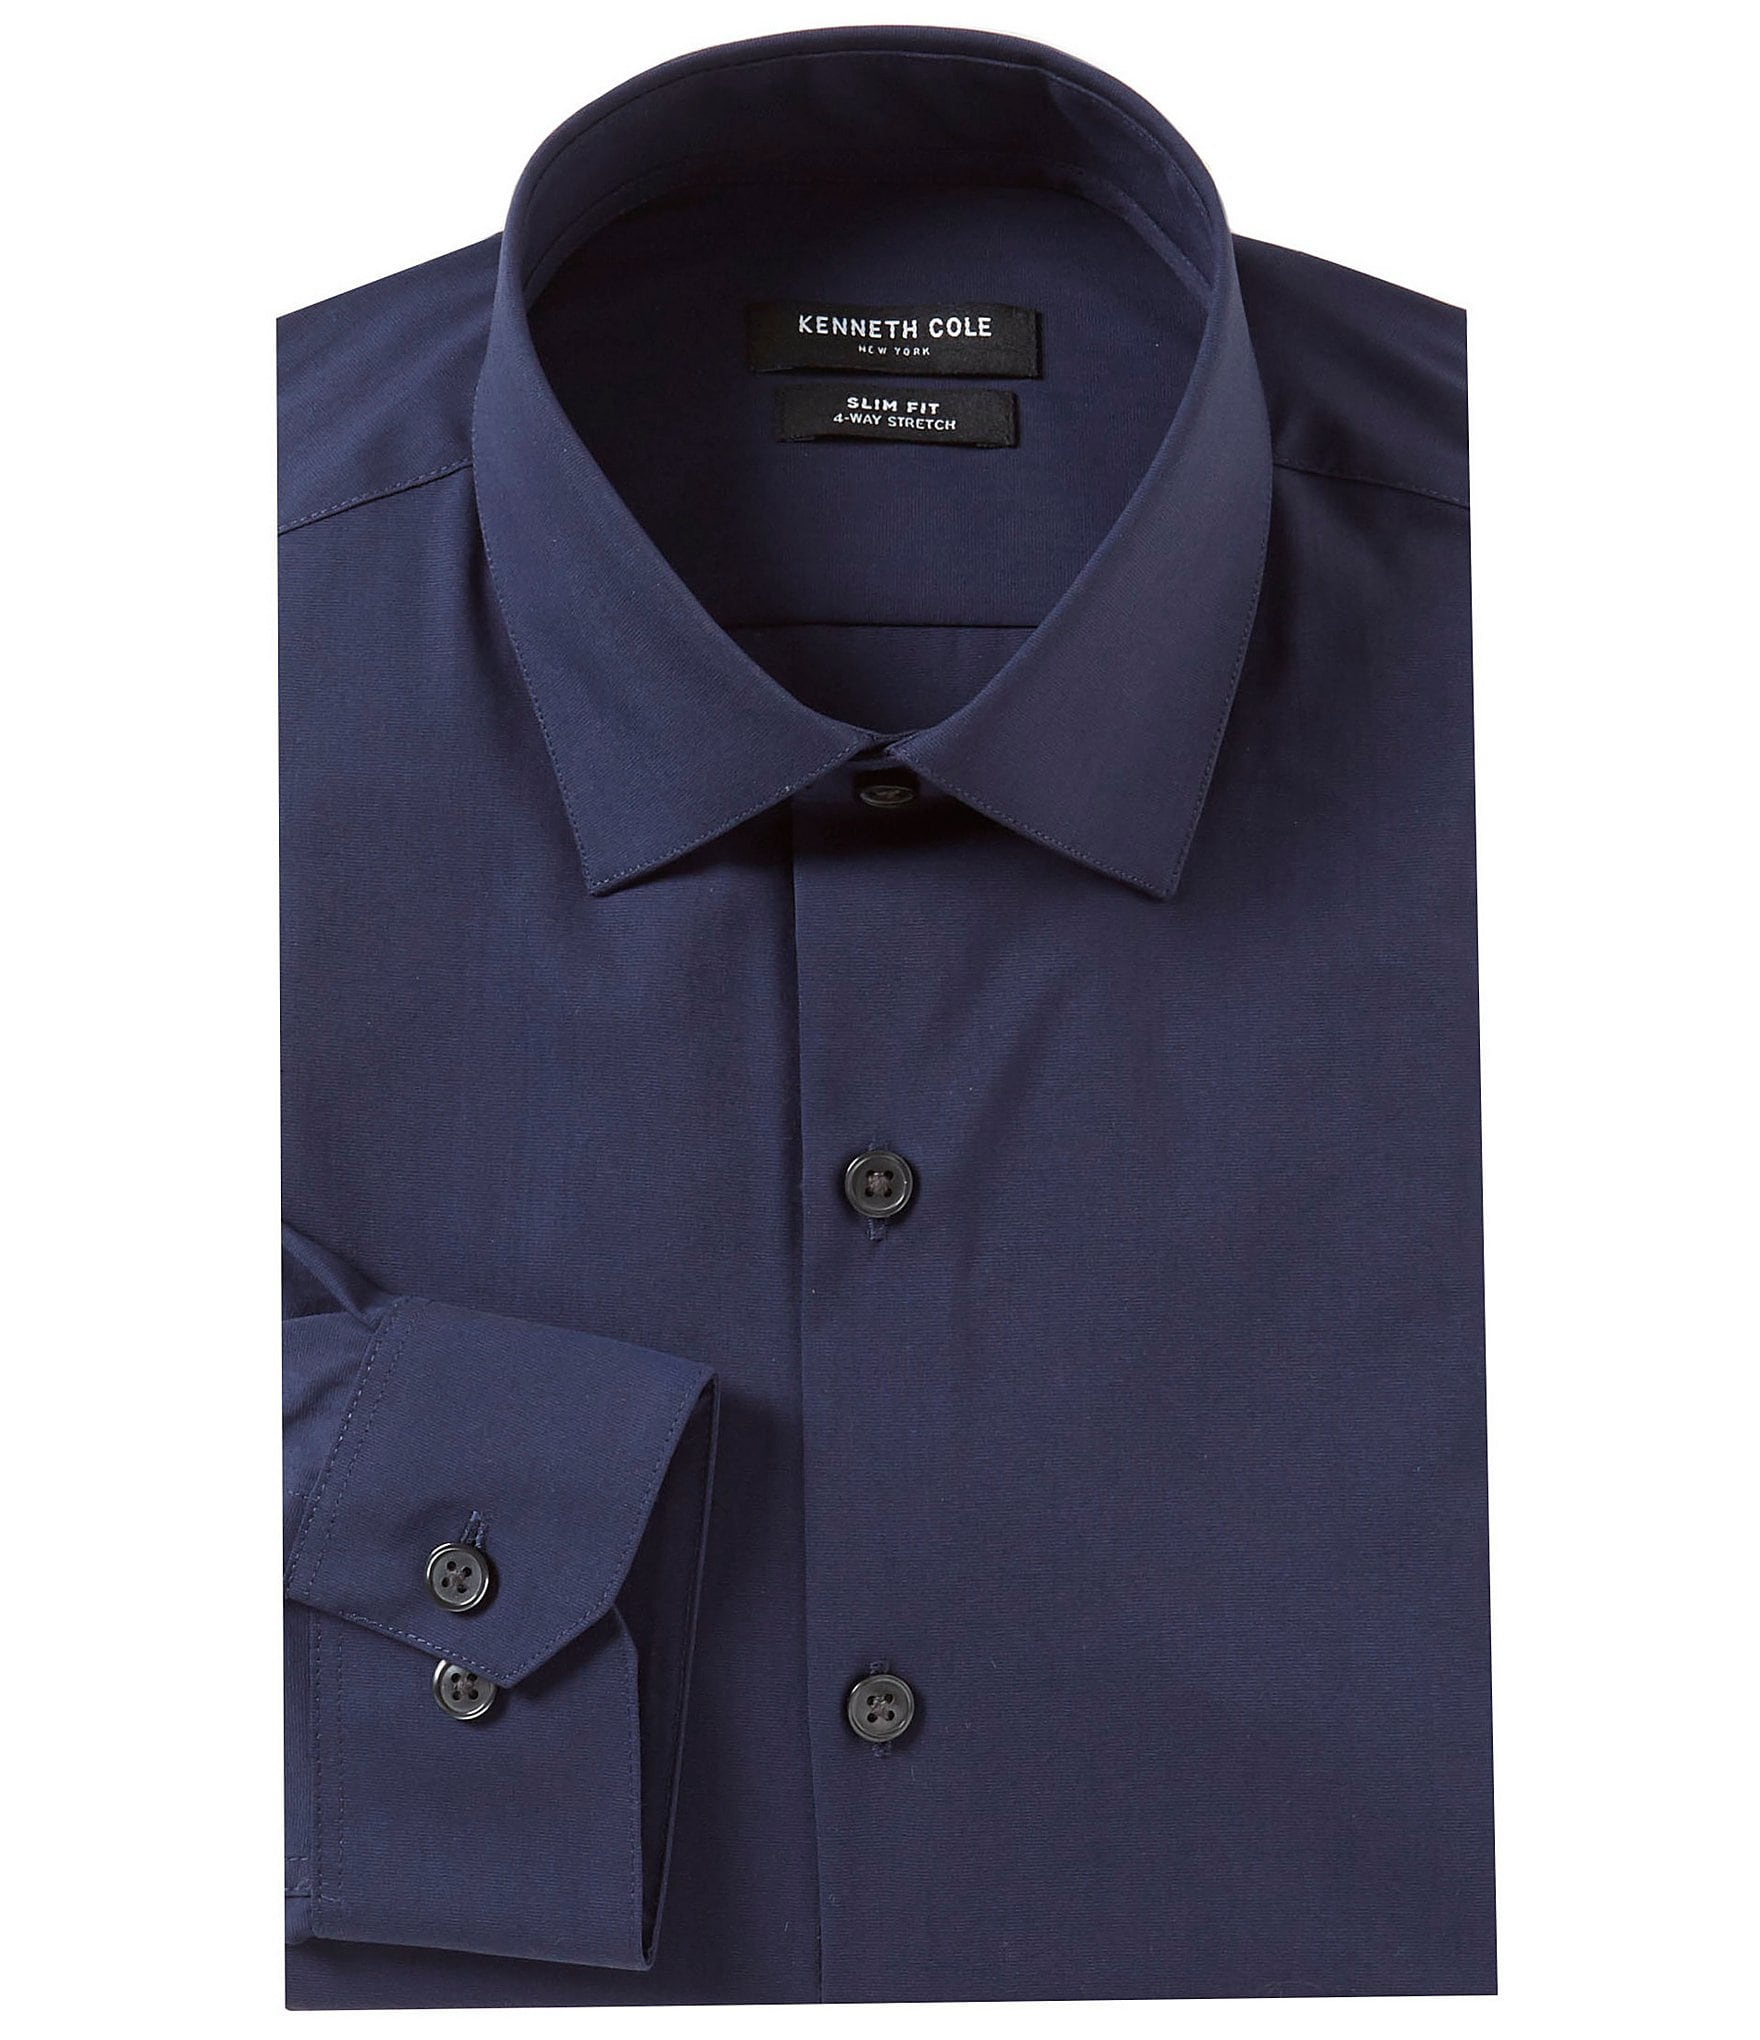 Amazoncom kenneth cole dress shirts Clothing Shoes